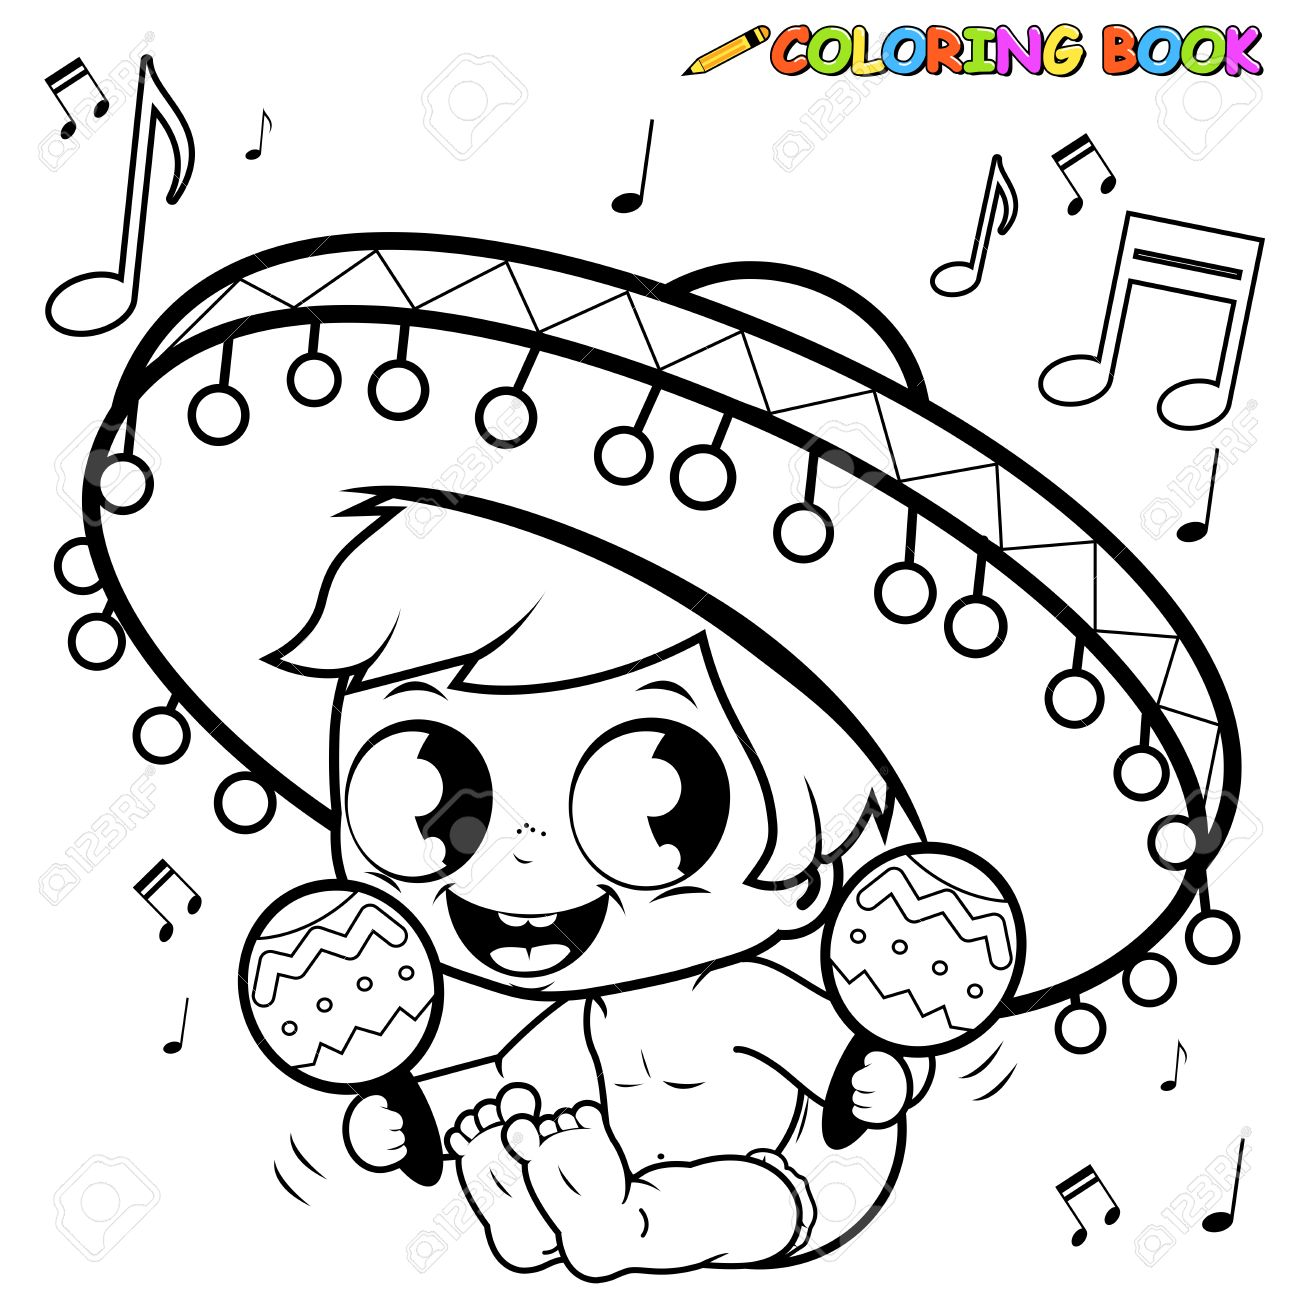 mariachi baby boy playing the maracas coloring page stock vector 53049739